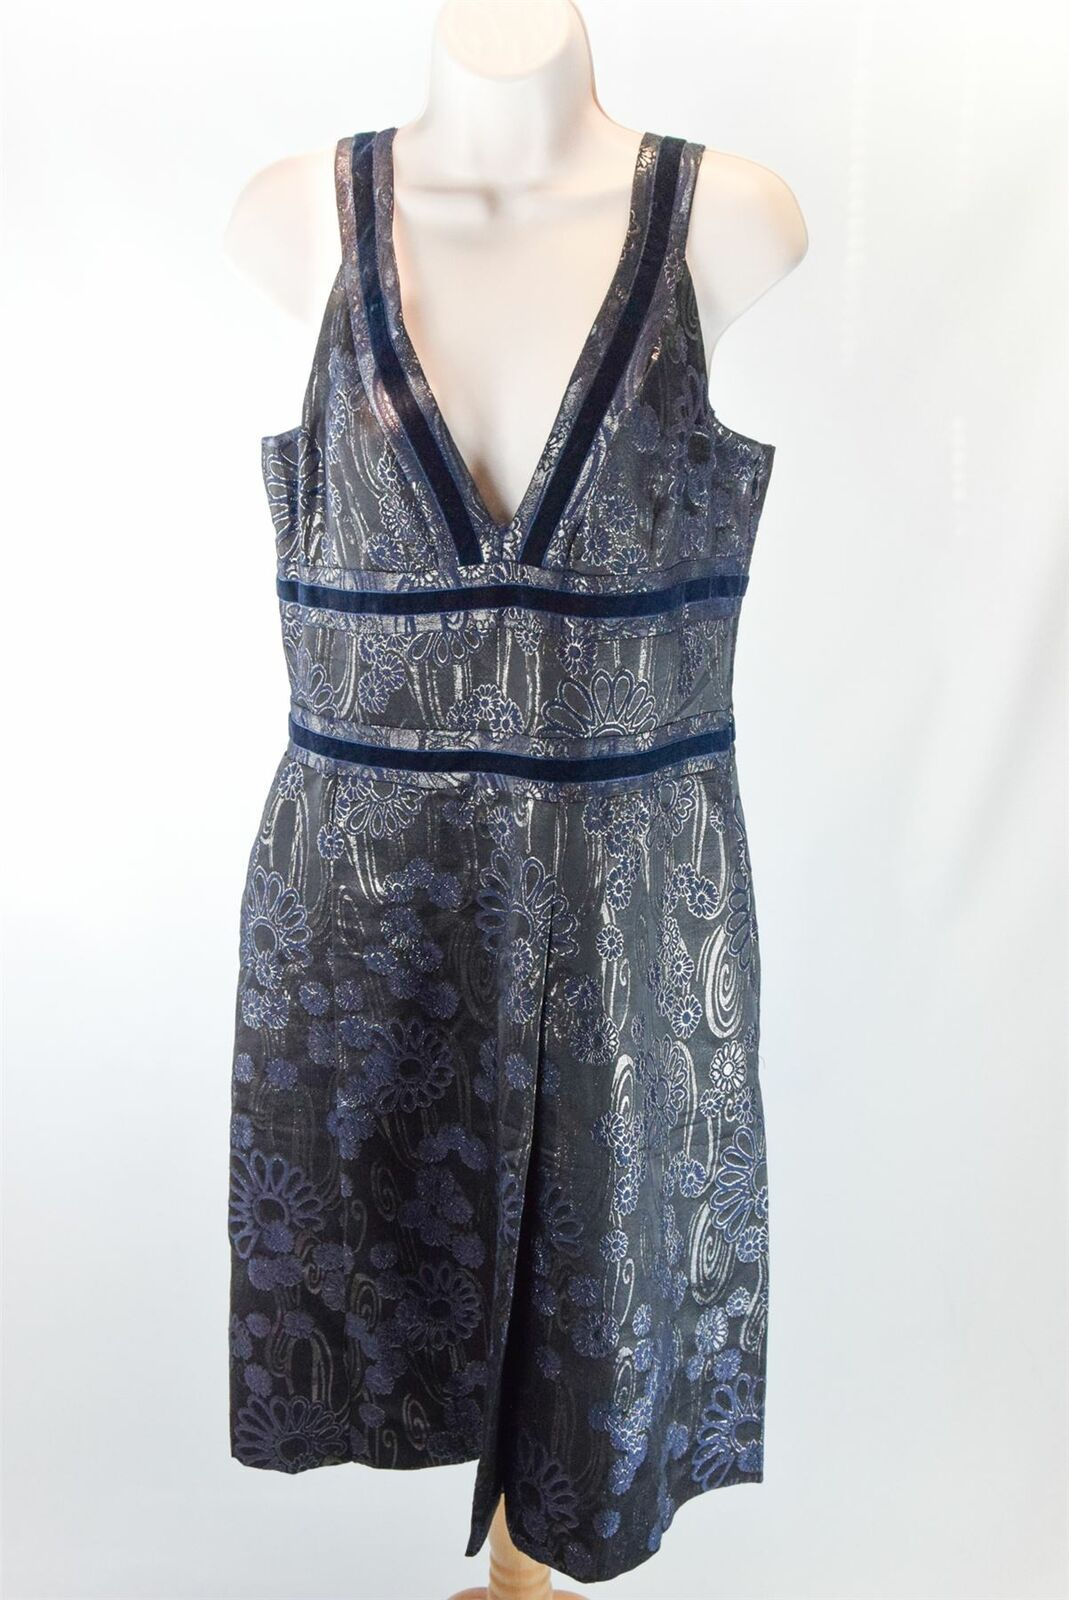 CACHAREL Grey Shiny Floral Dress, US 10